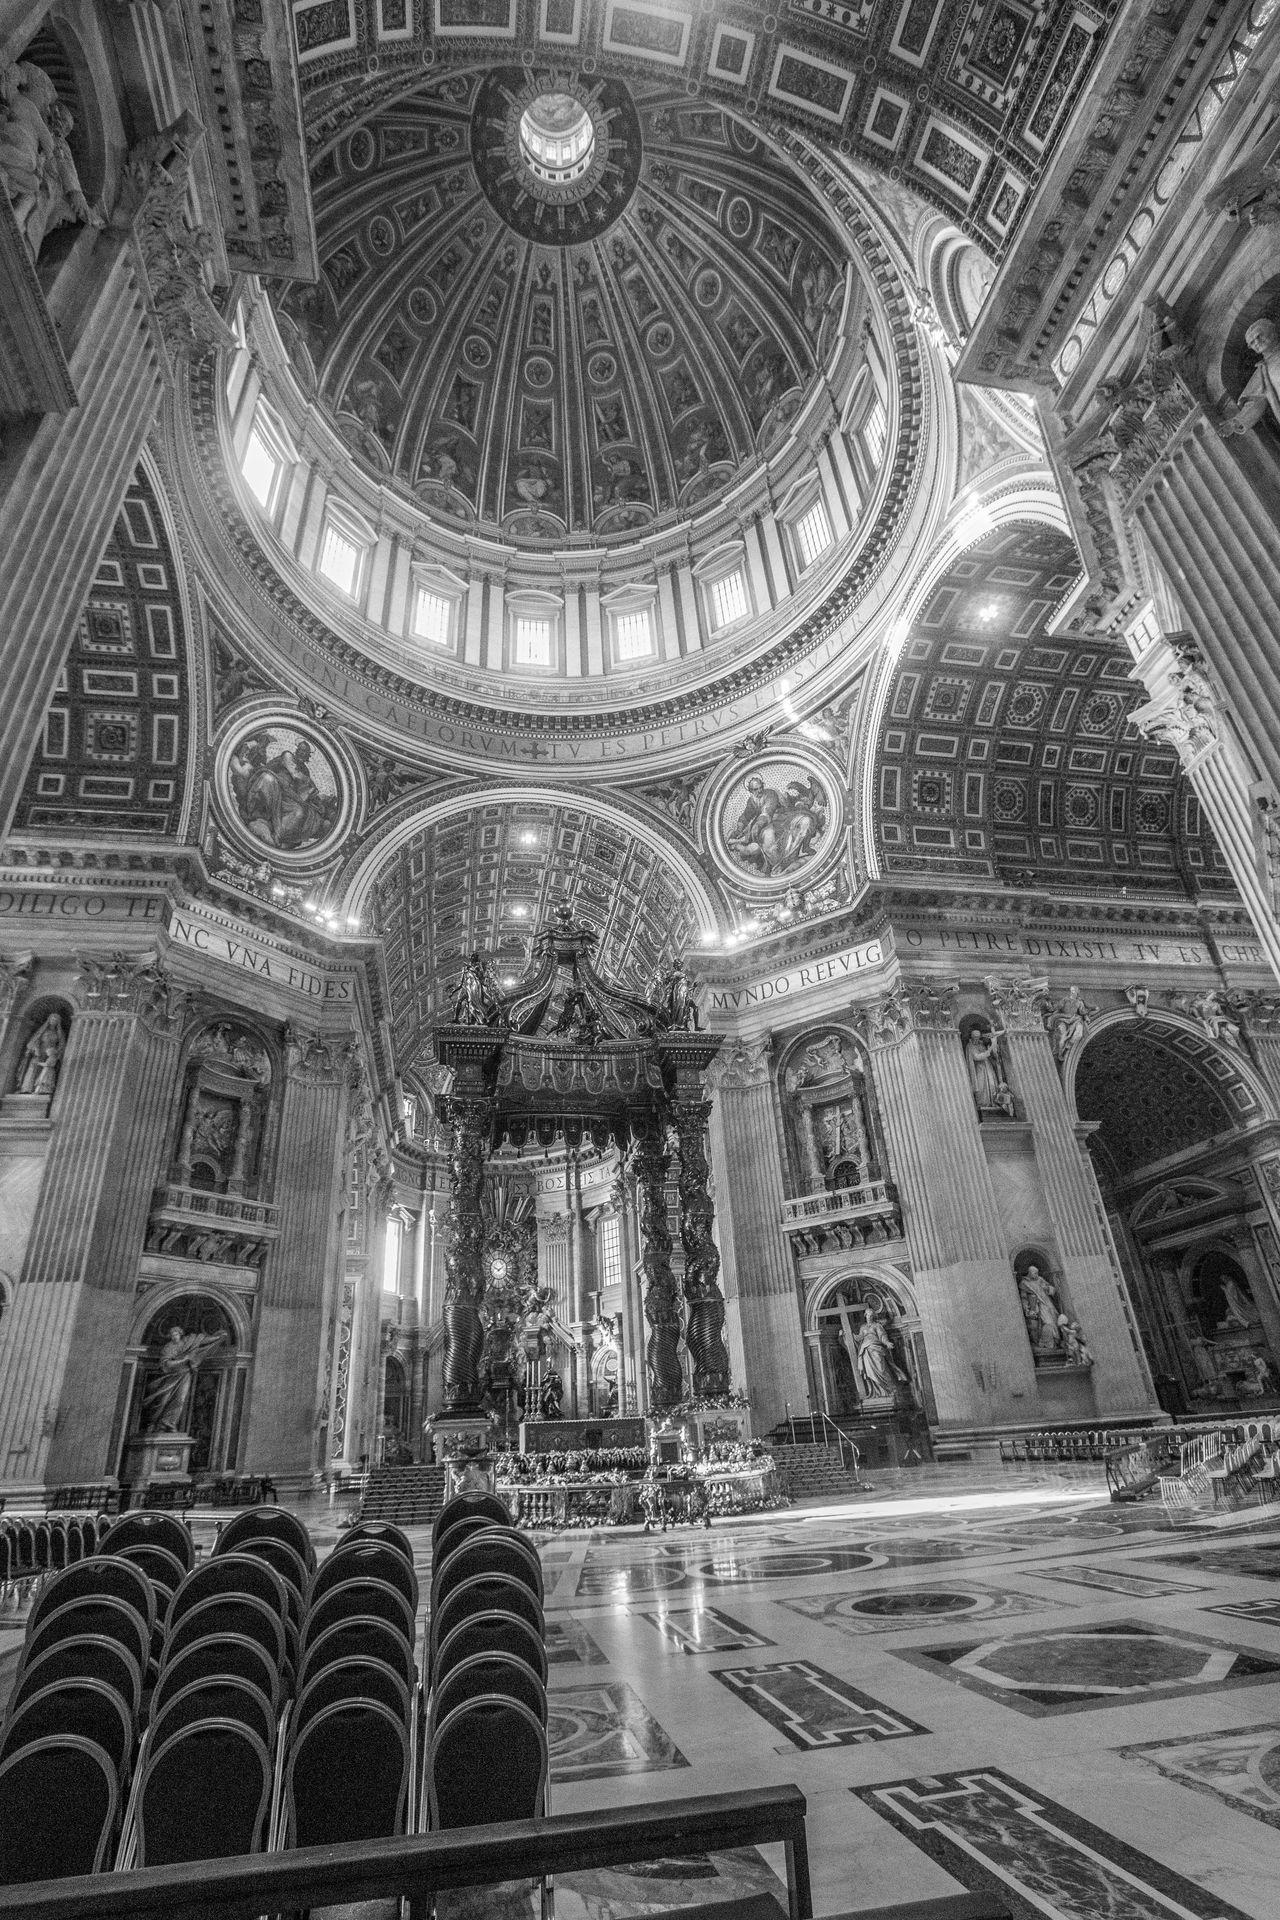 Architecture Black Black & White Black And White Blackandwhite Church Cultures Day Dome Indoors  Light And Shadow No People Place Of Worship Rome Rome Italy St. Peter's Basilica St. Petersburg Vatican VaticanCity